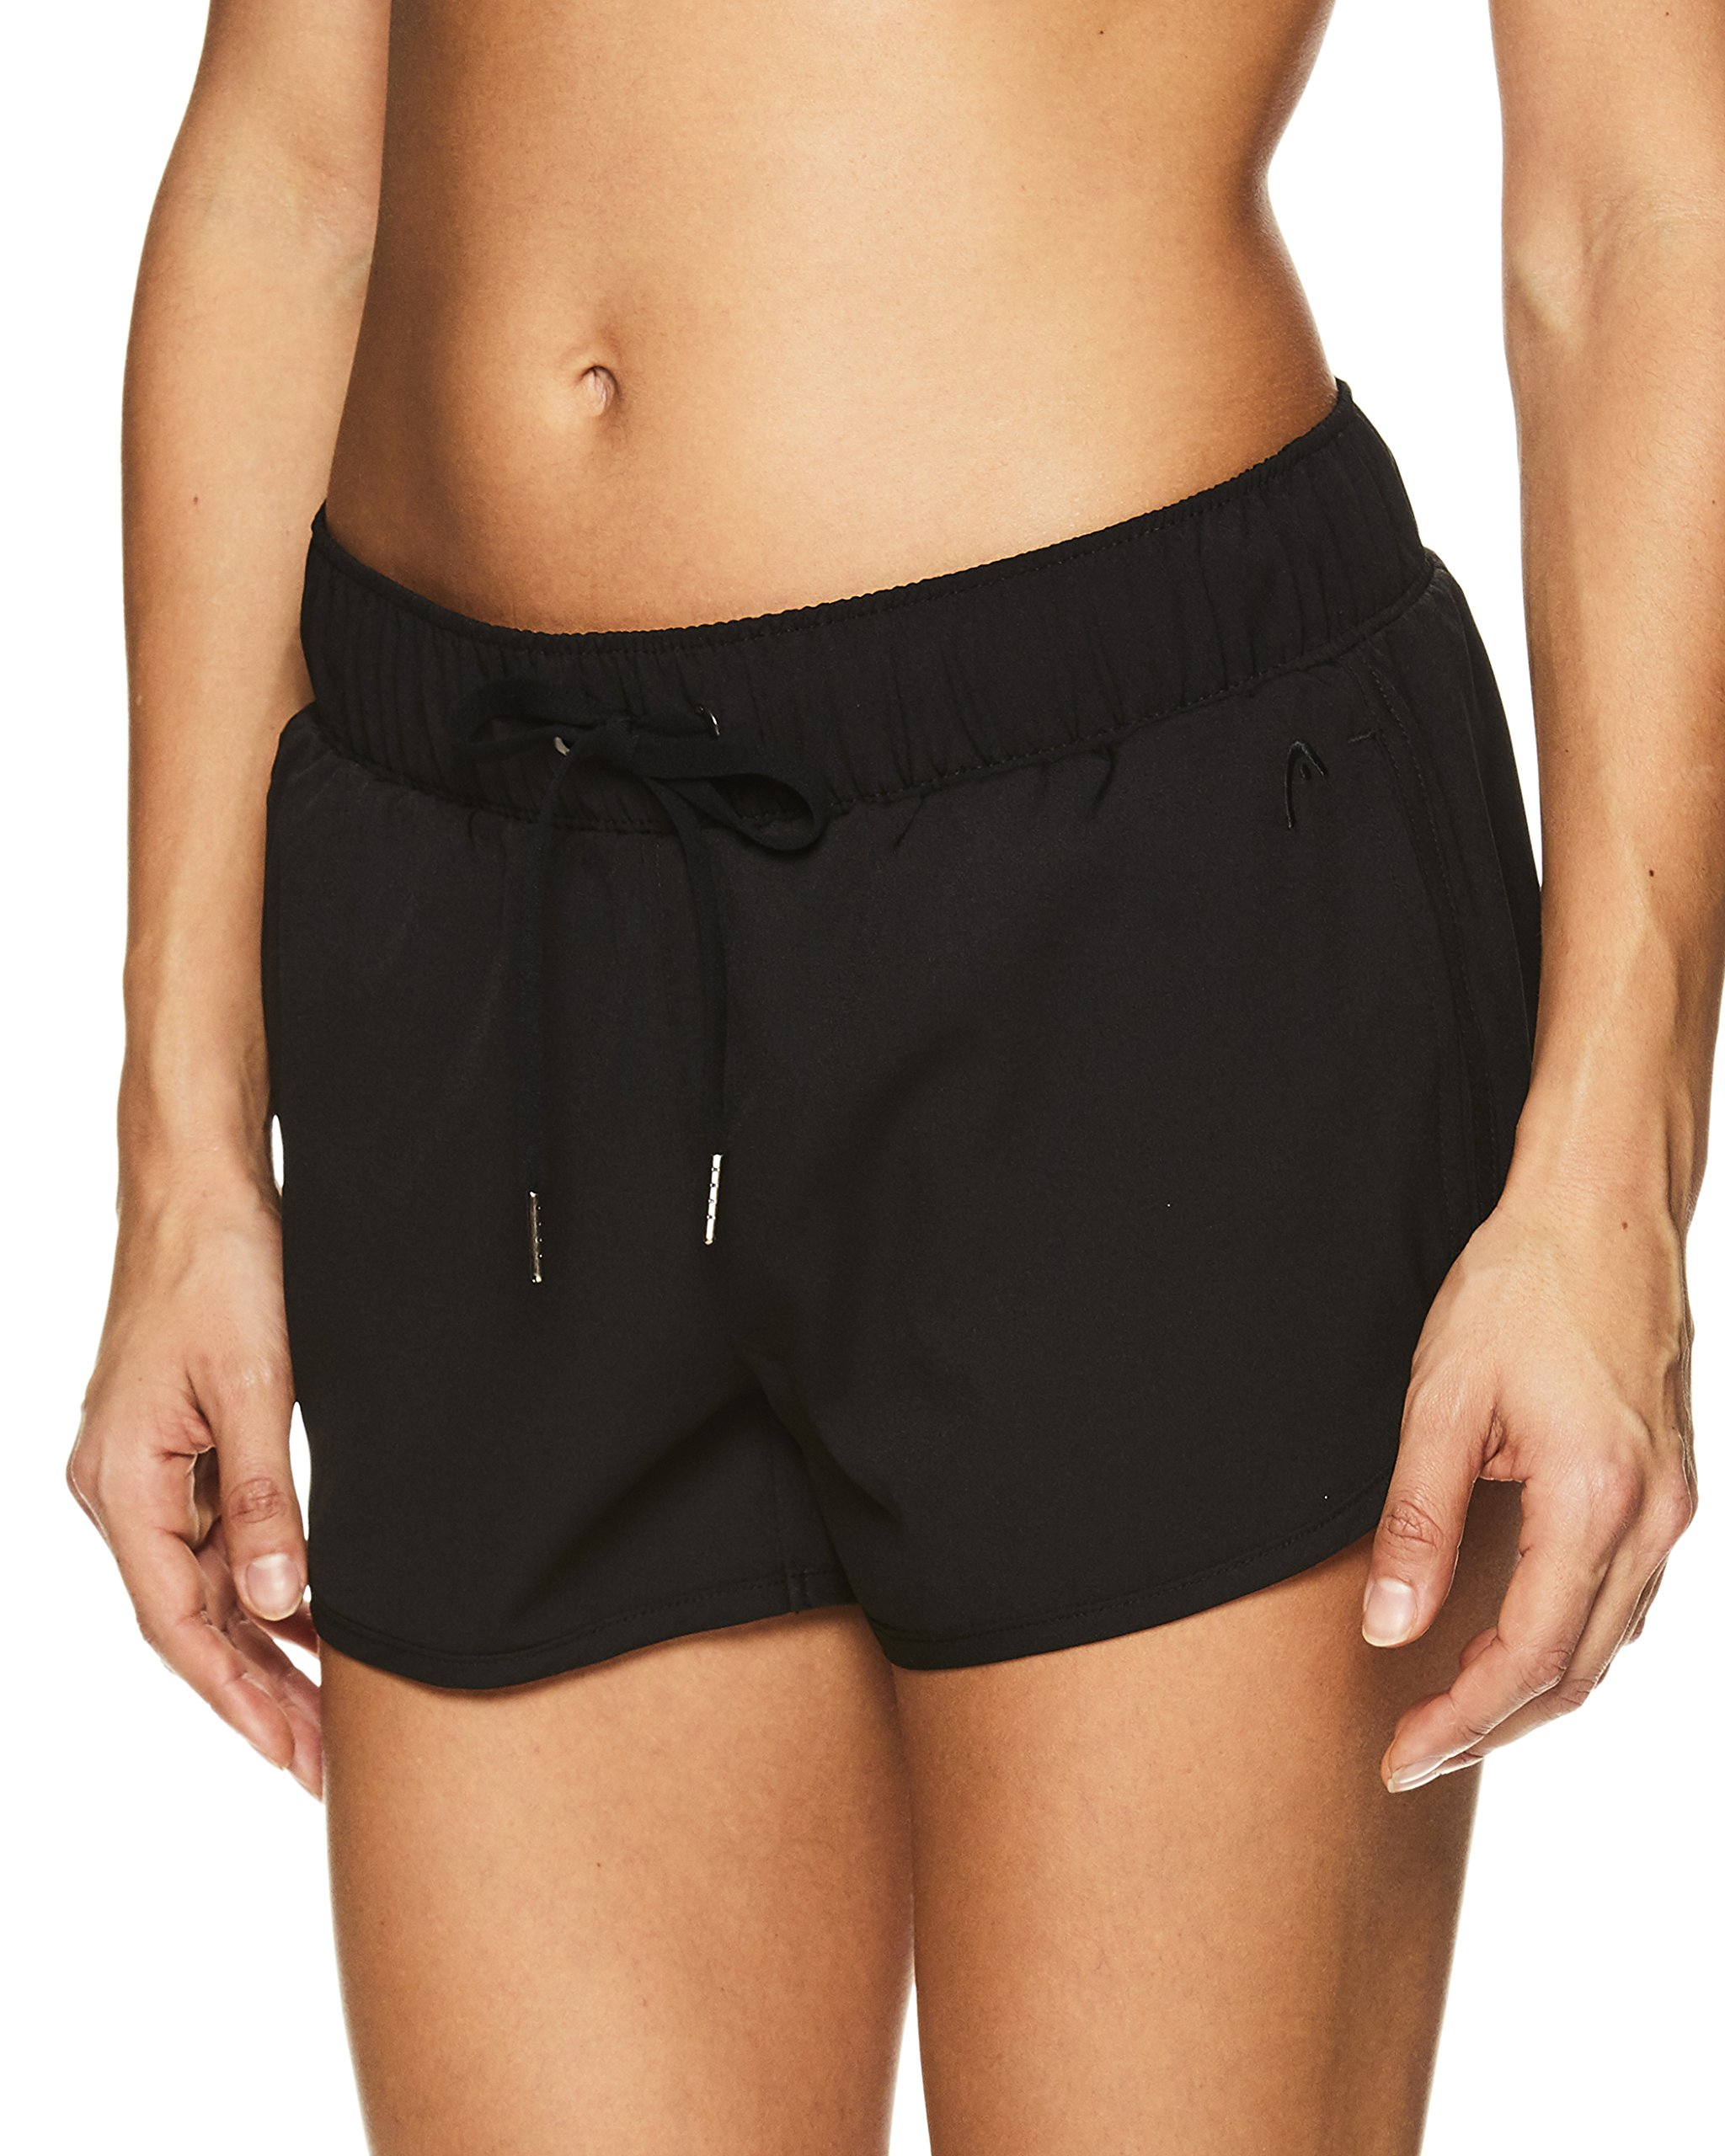 HEAD Women's Athletic Workout Shorts - Polyester Gym Training & Running Short - Black City Walker, X-Small